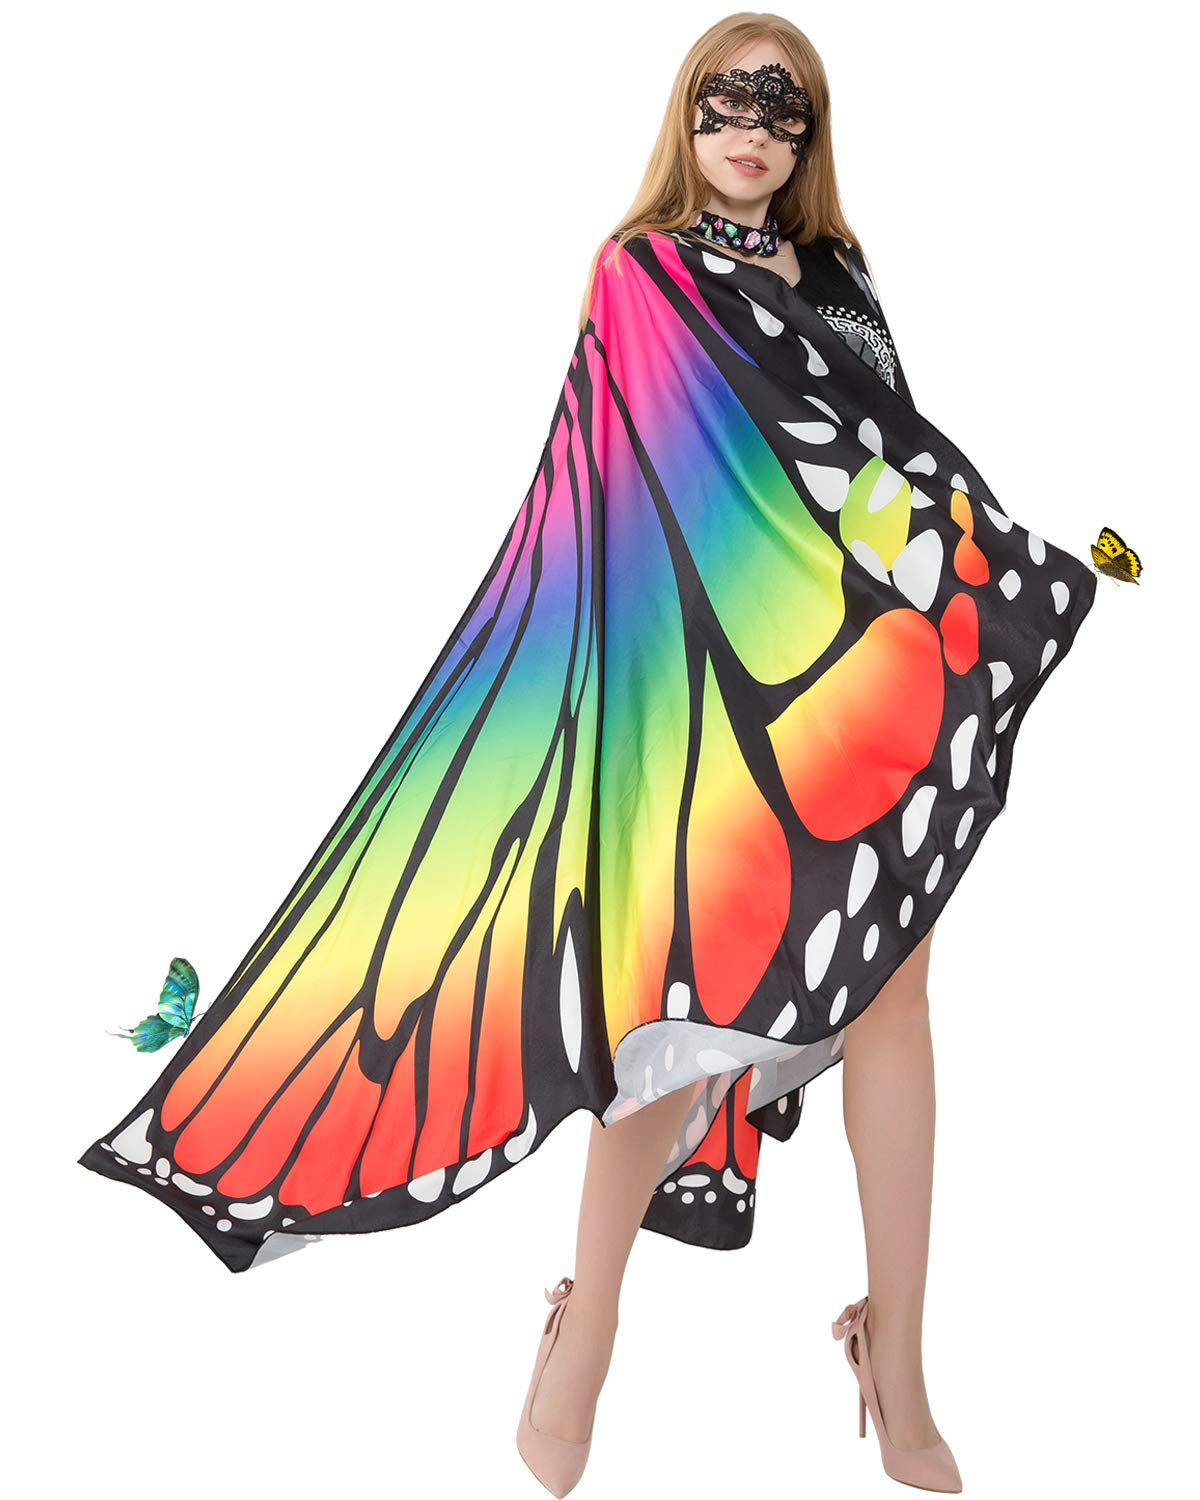 Halloween Soft Fabric Butterfly Wings Shawl with Mask for Women Fairy Ladies Cape Cloak Nymph Pixie Costume Accessory